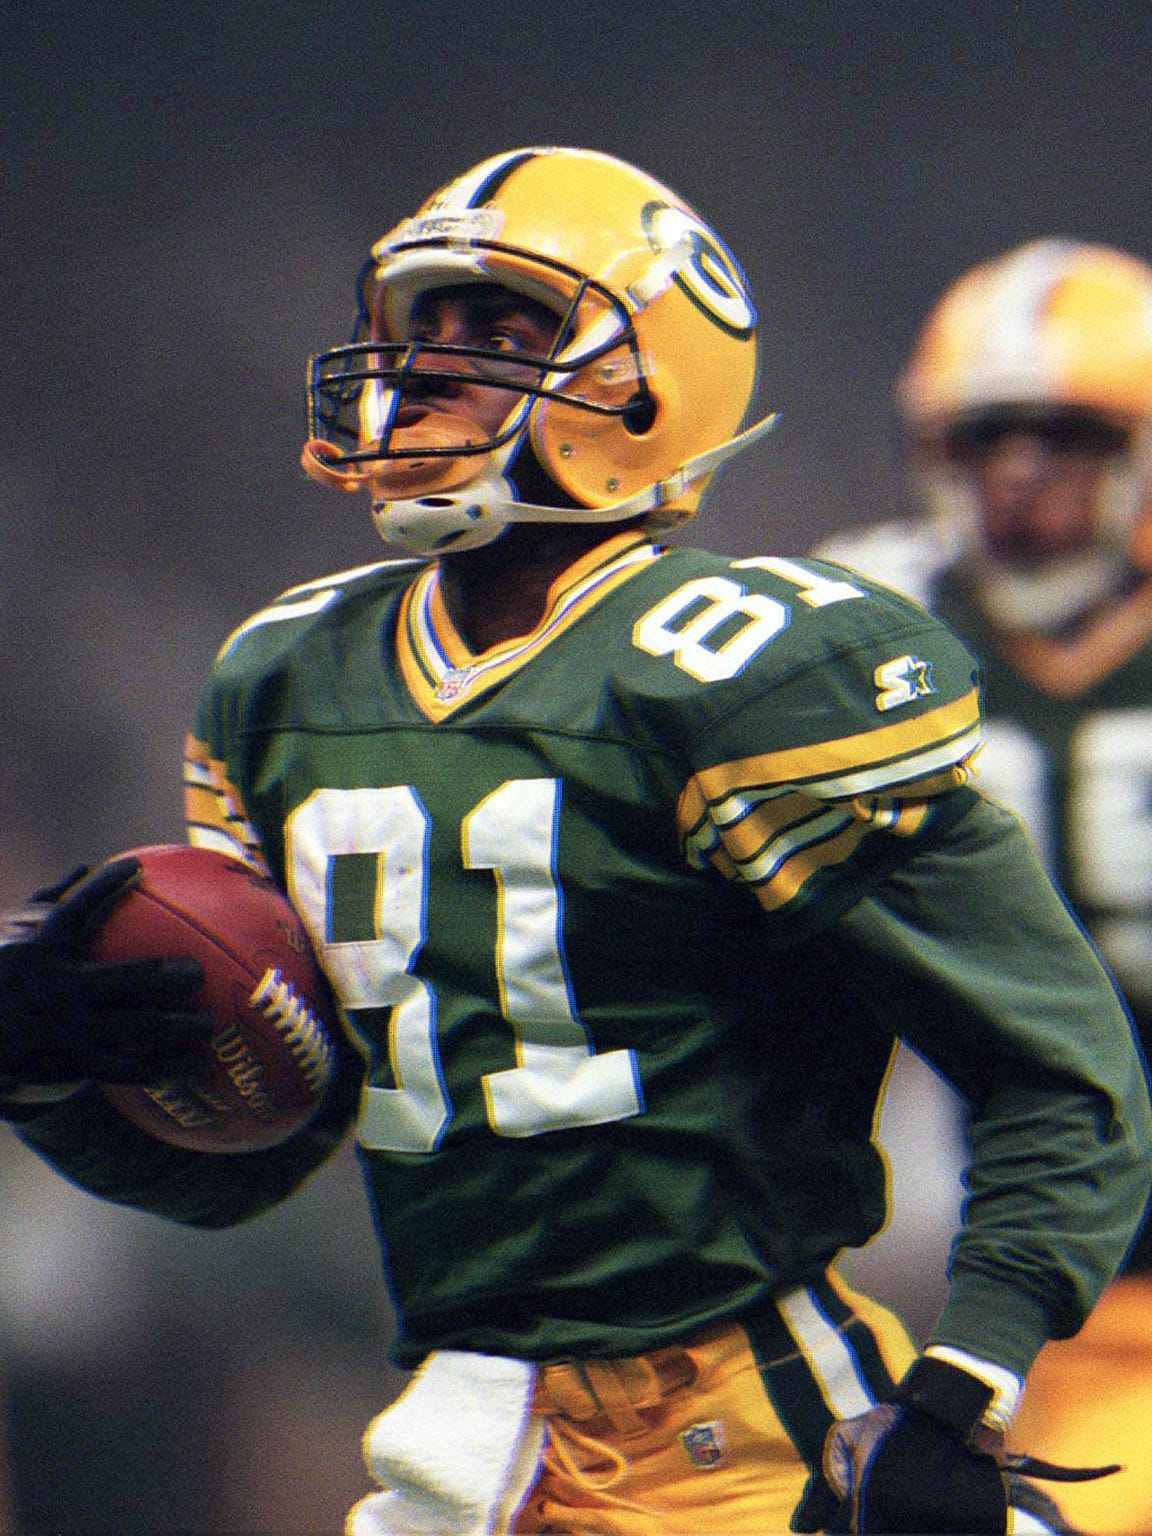 Text: Green Bay Packers Desmond Howard #81 streaks